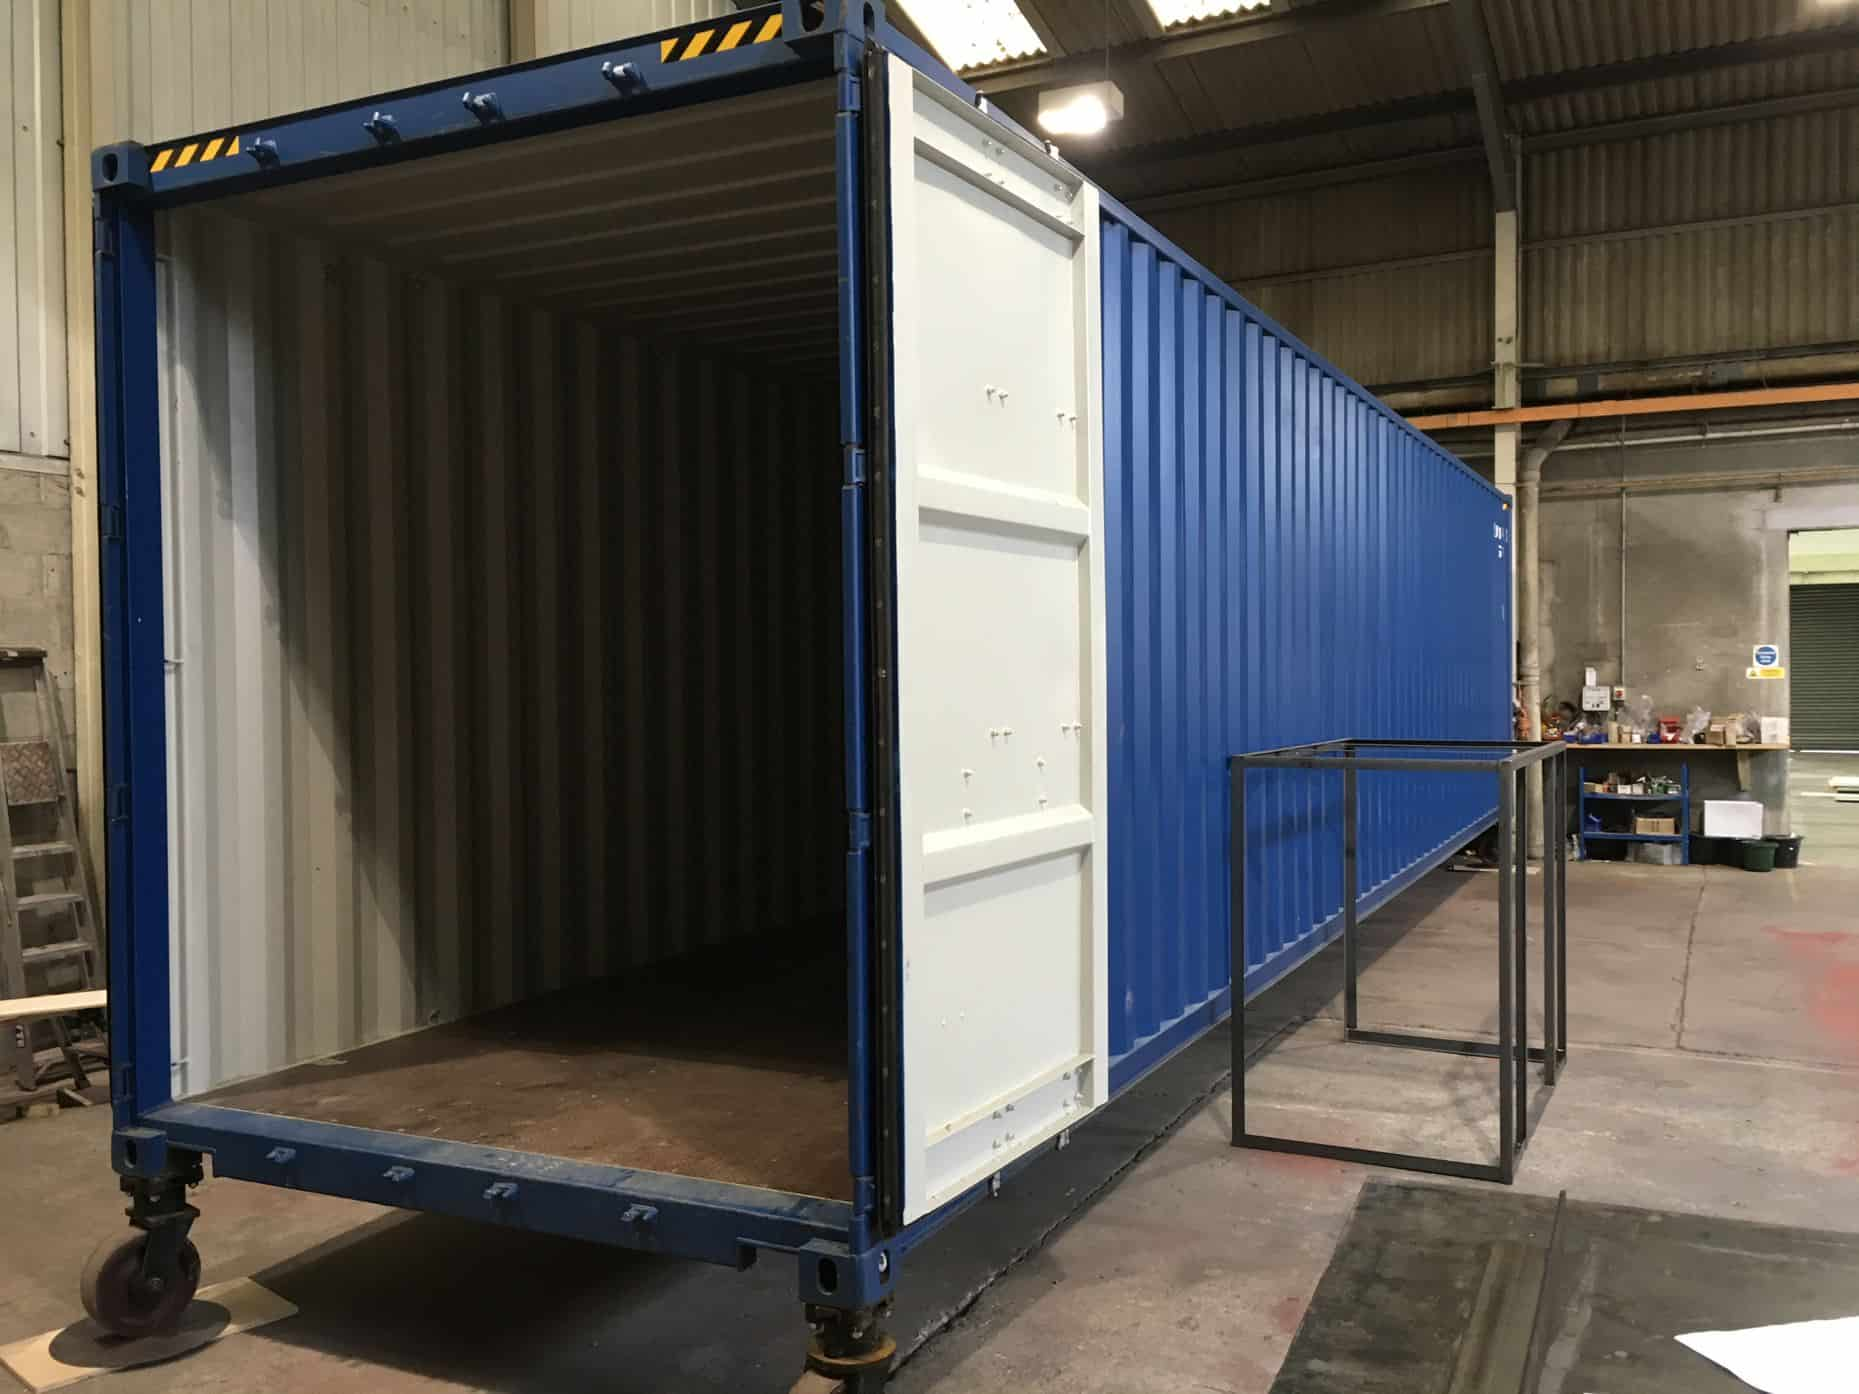 Shipping container ready to be converted